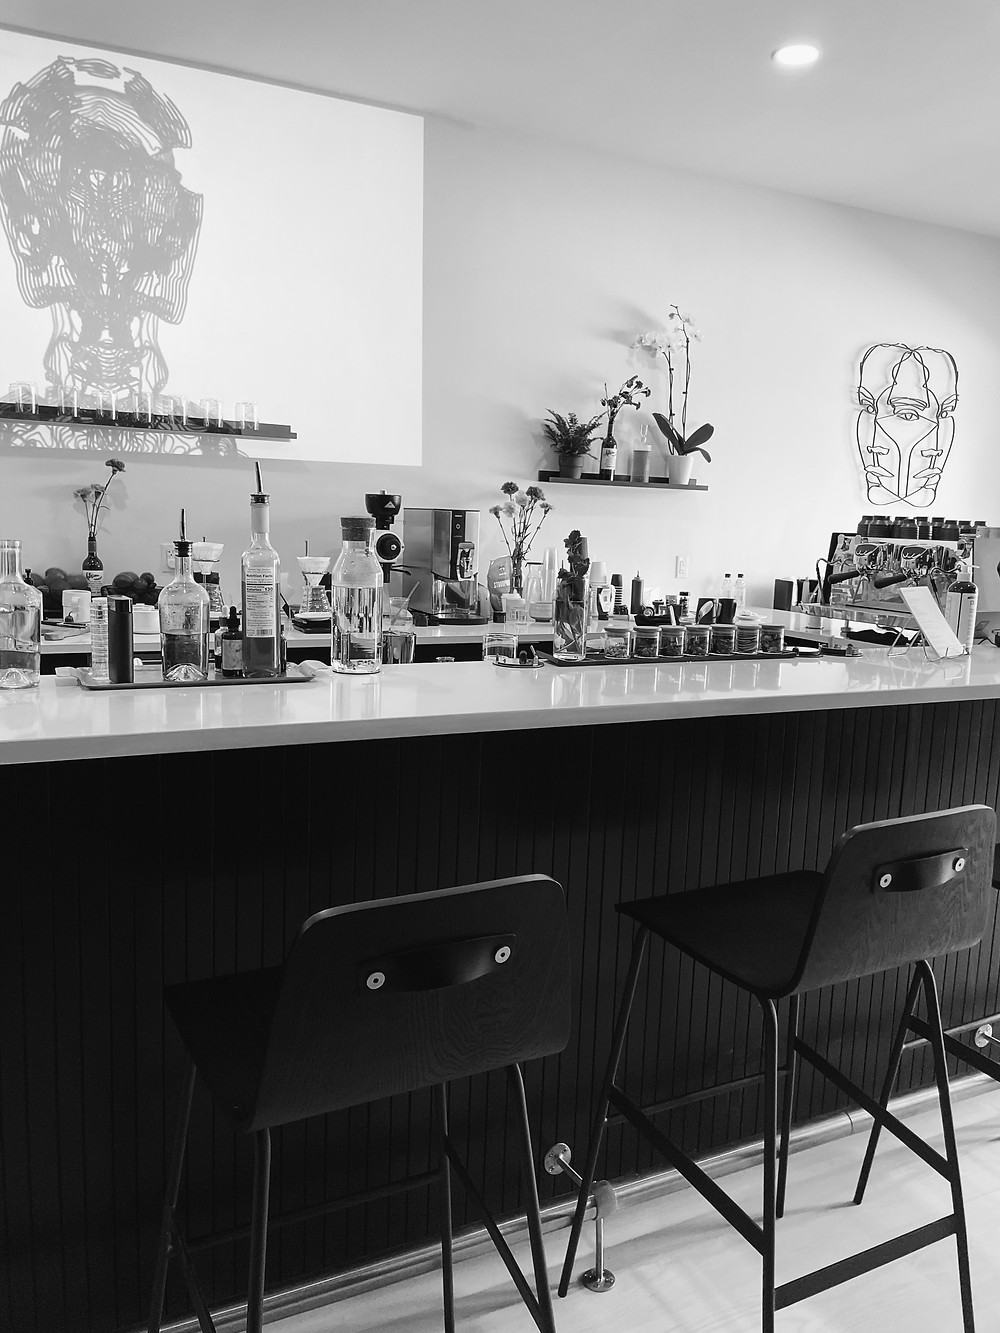 The bar at Tonic Coffee in Lawrenceville Pittsburgh